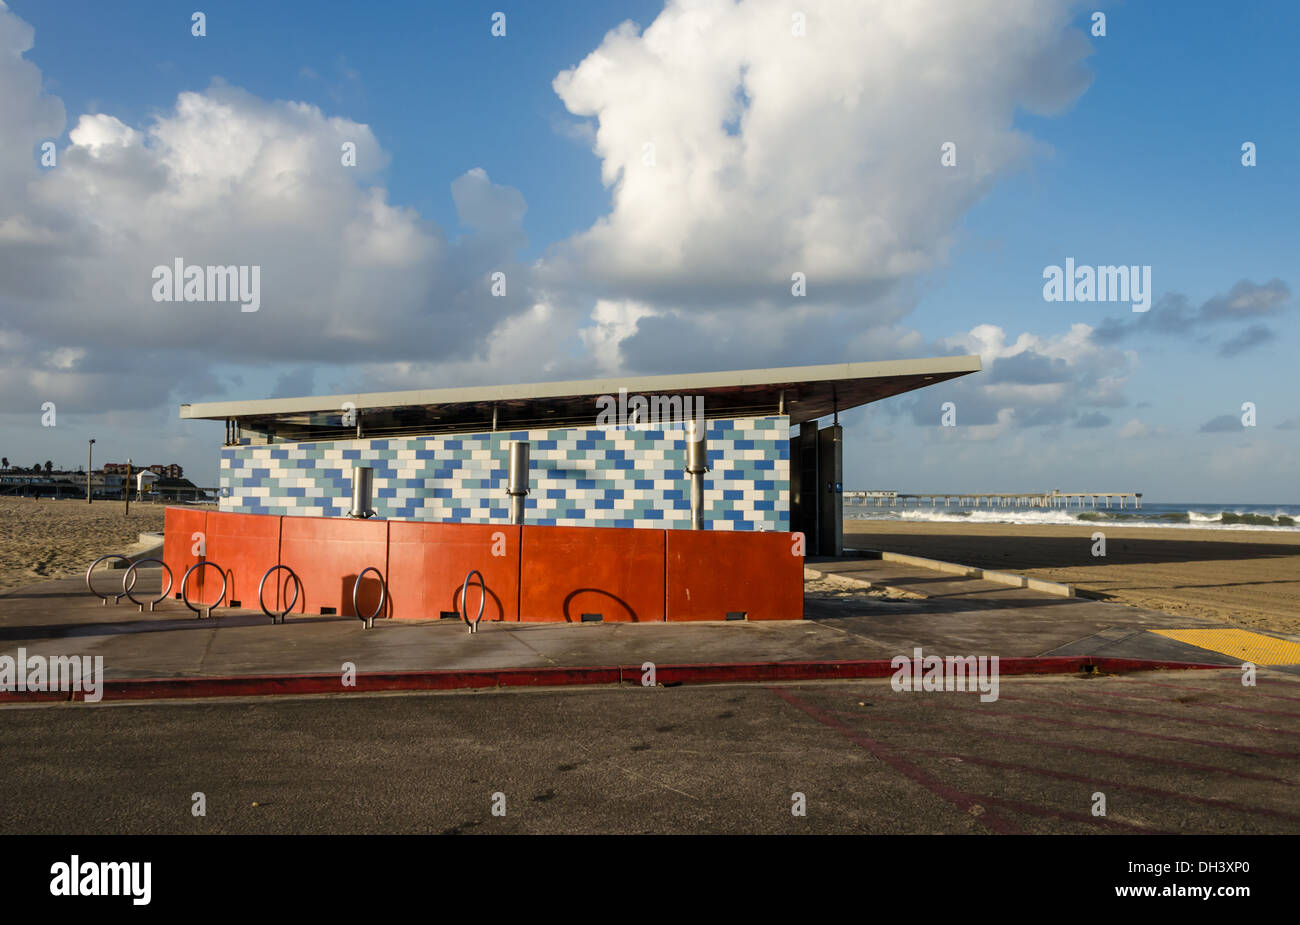 A colorful public restroom and showers at Ocean Beach. San Diego, California, United States. - Stock Image